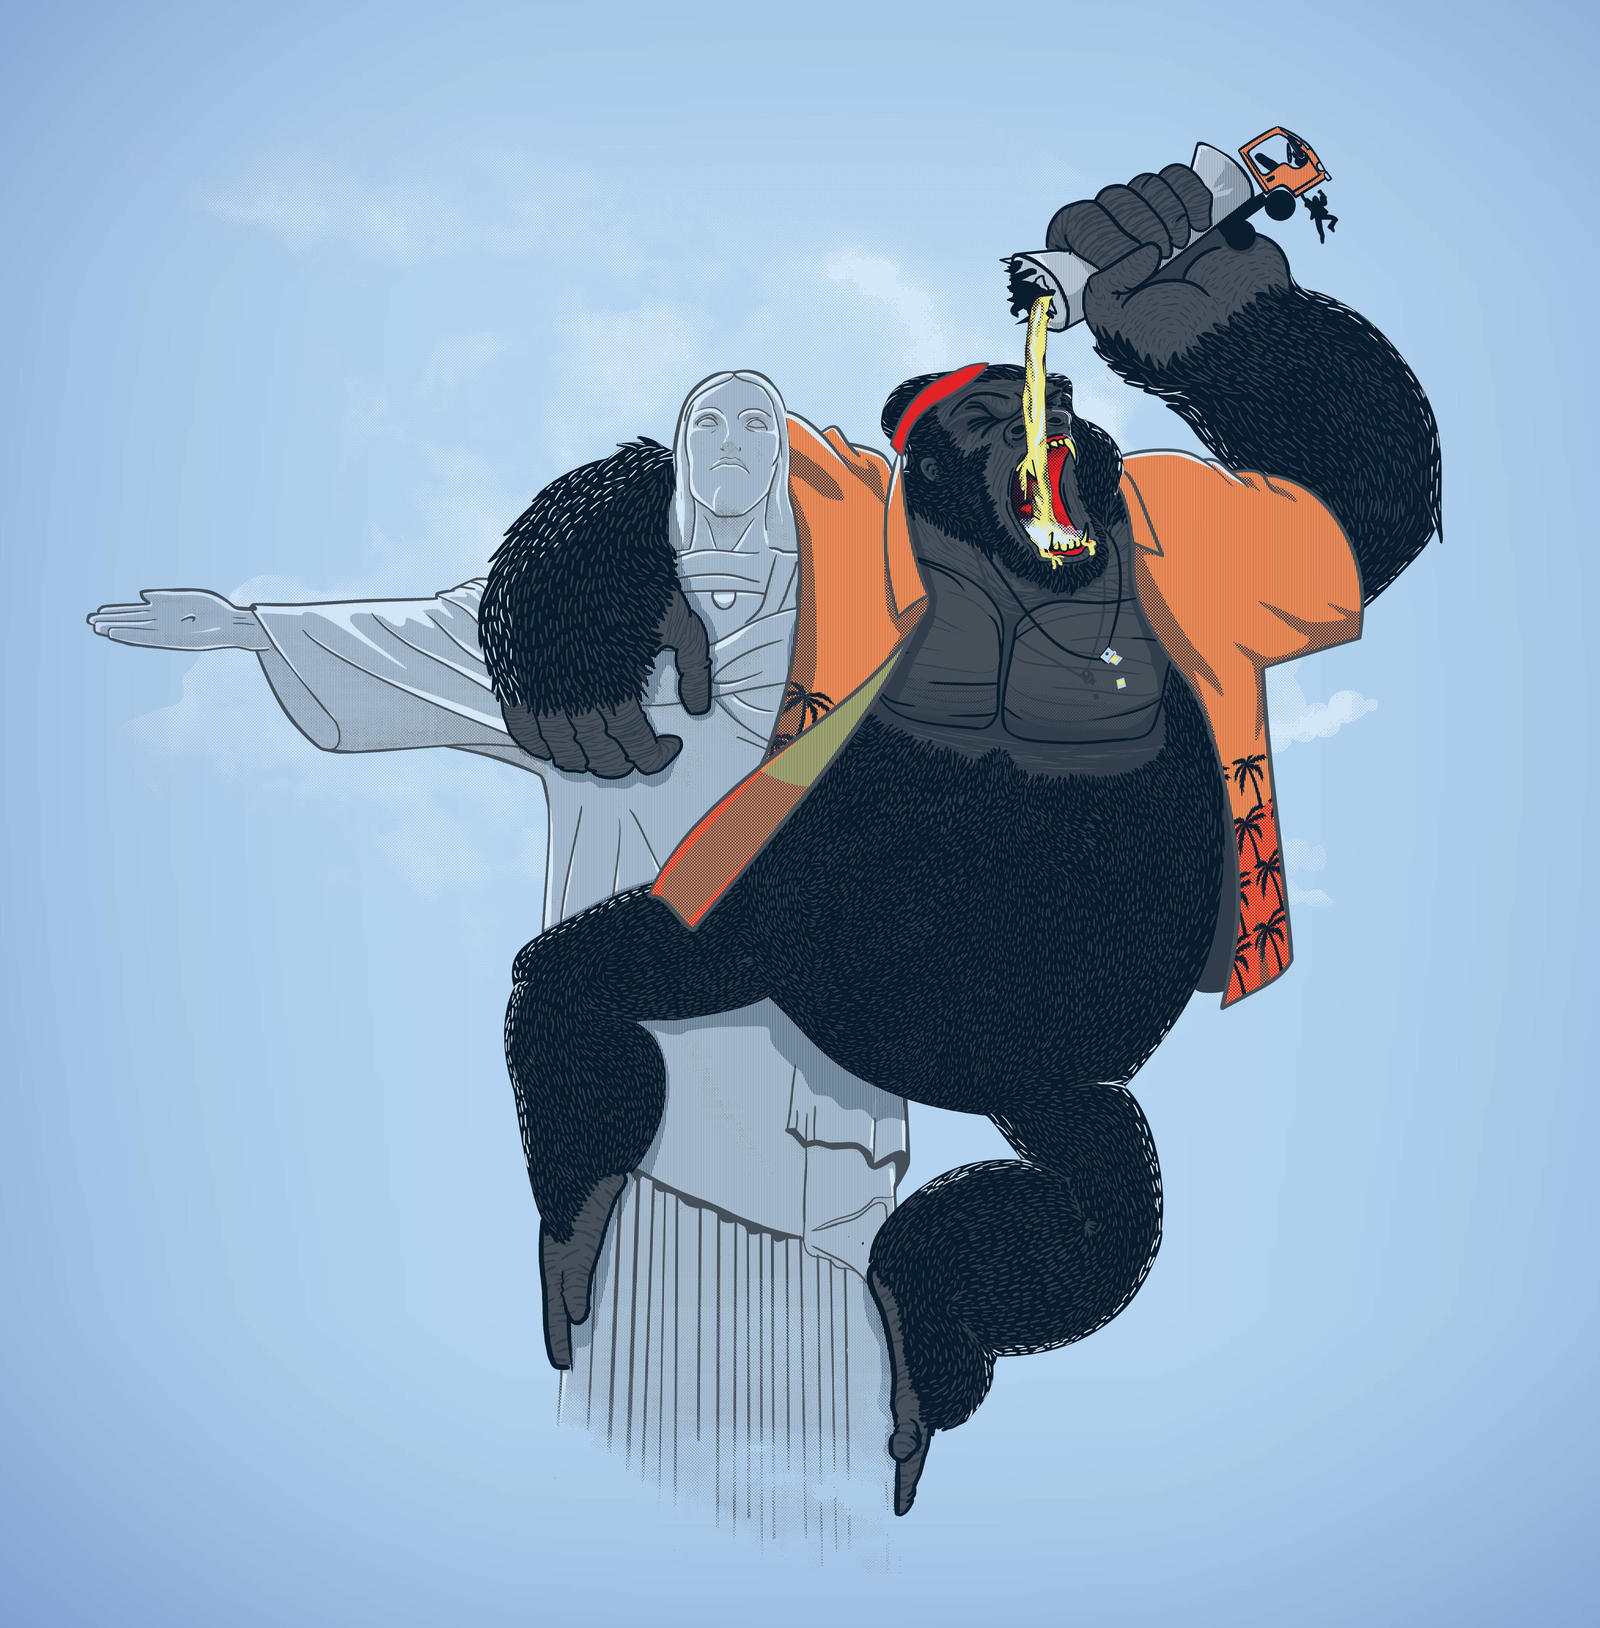 King kong vacations by bafocomics